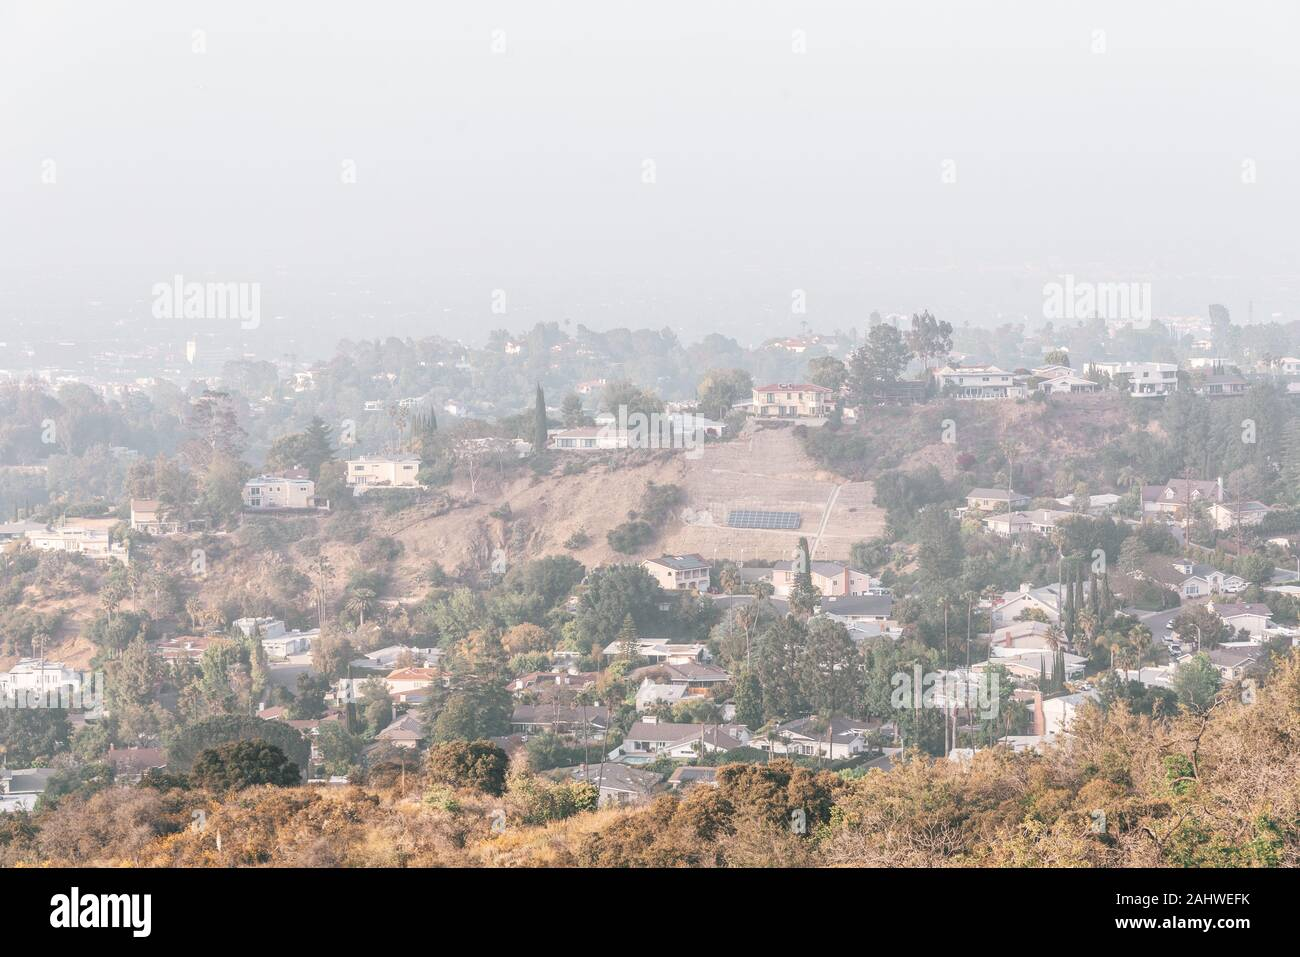 Hazy view from Mulholland Drive in Los Angeles, California Stock Photo